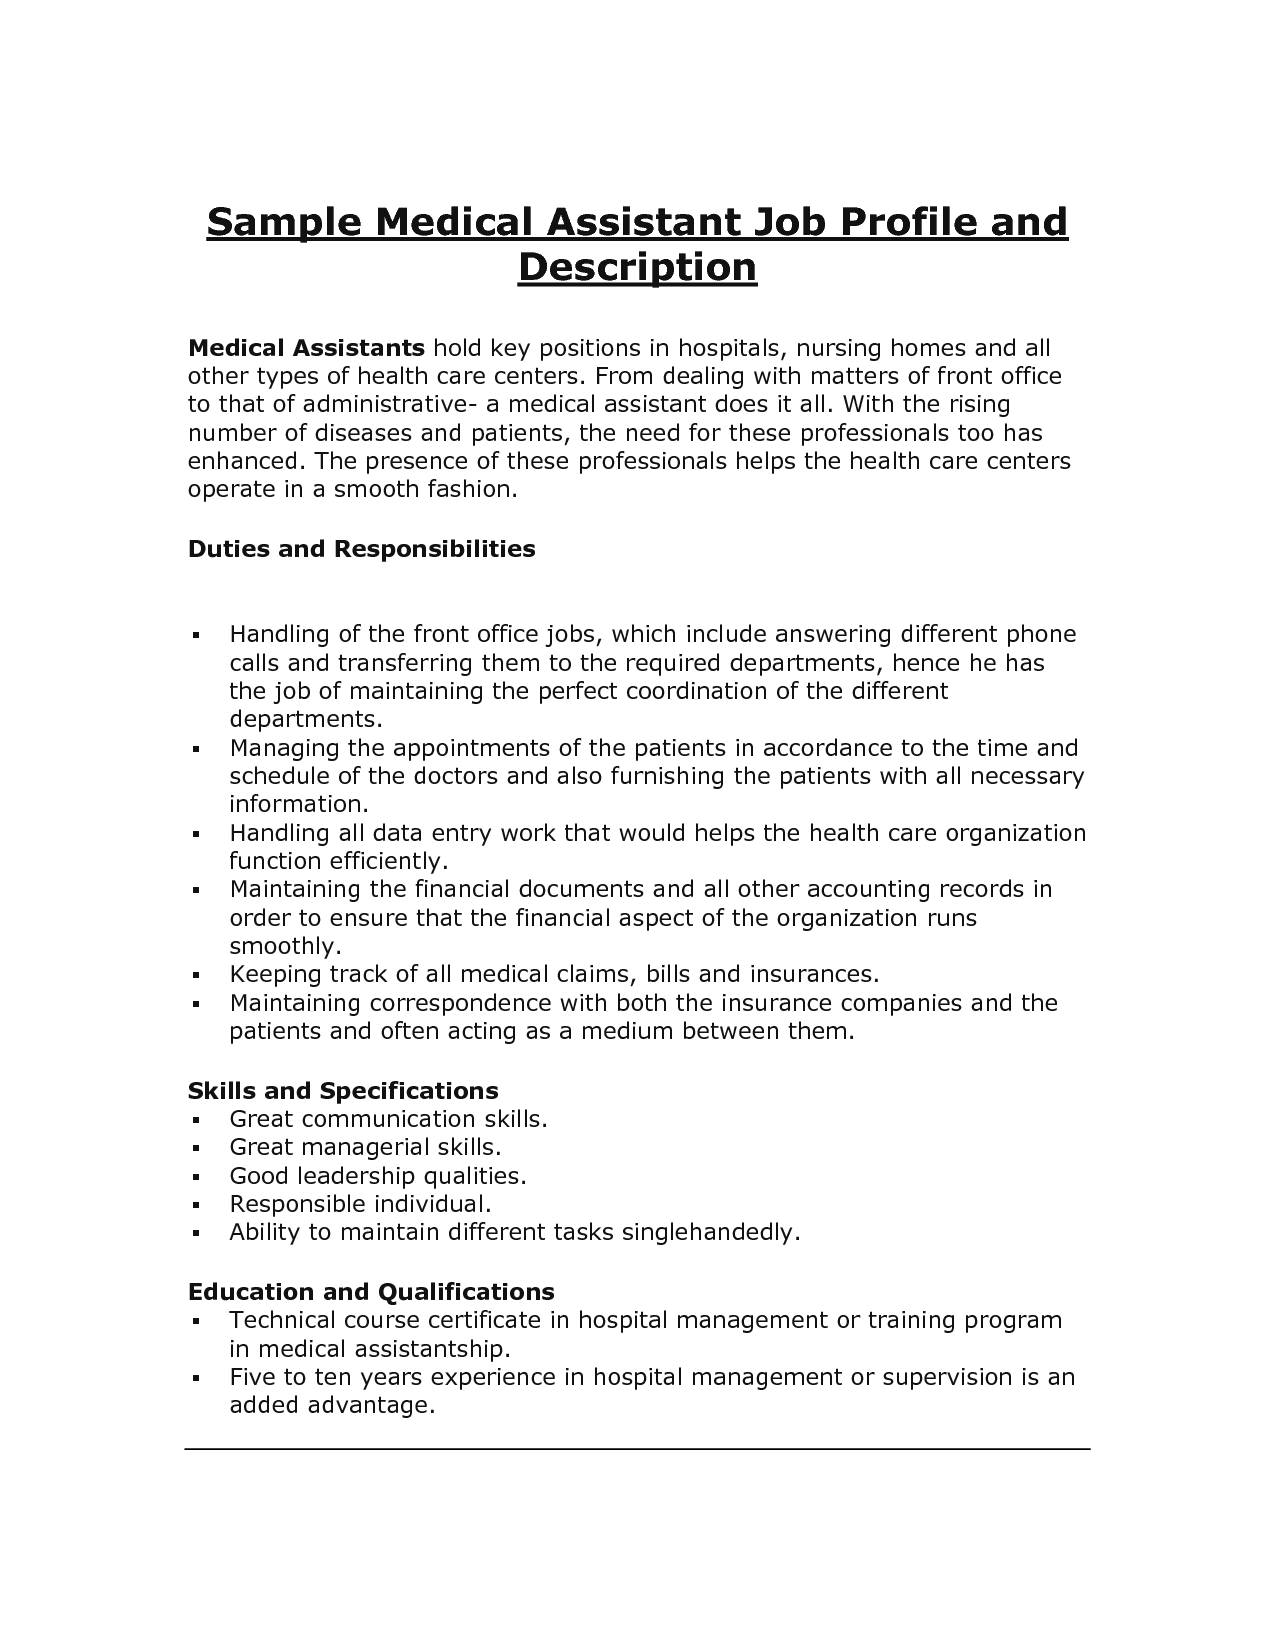 Medical Administrative Assistant Jobs 2016 - SampleBusinessResume ...